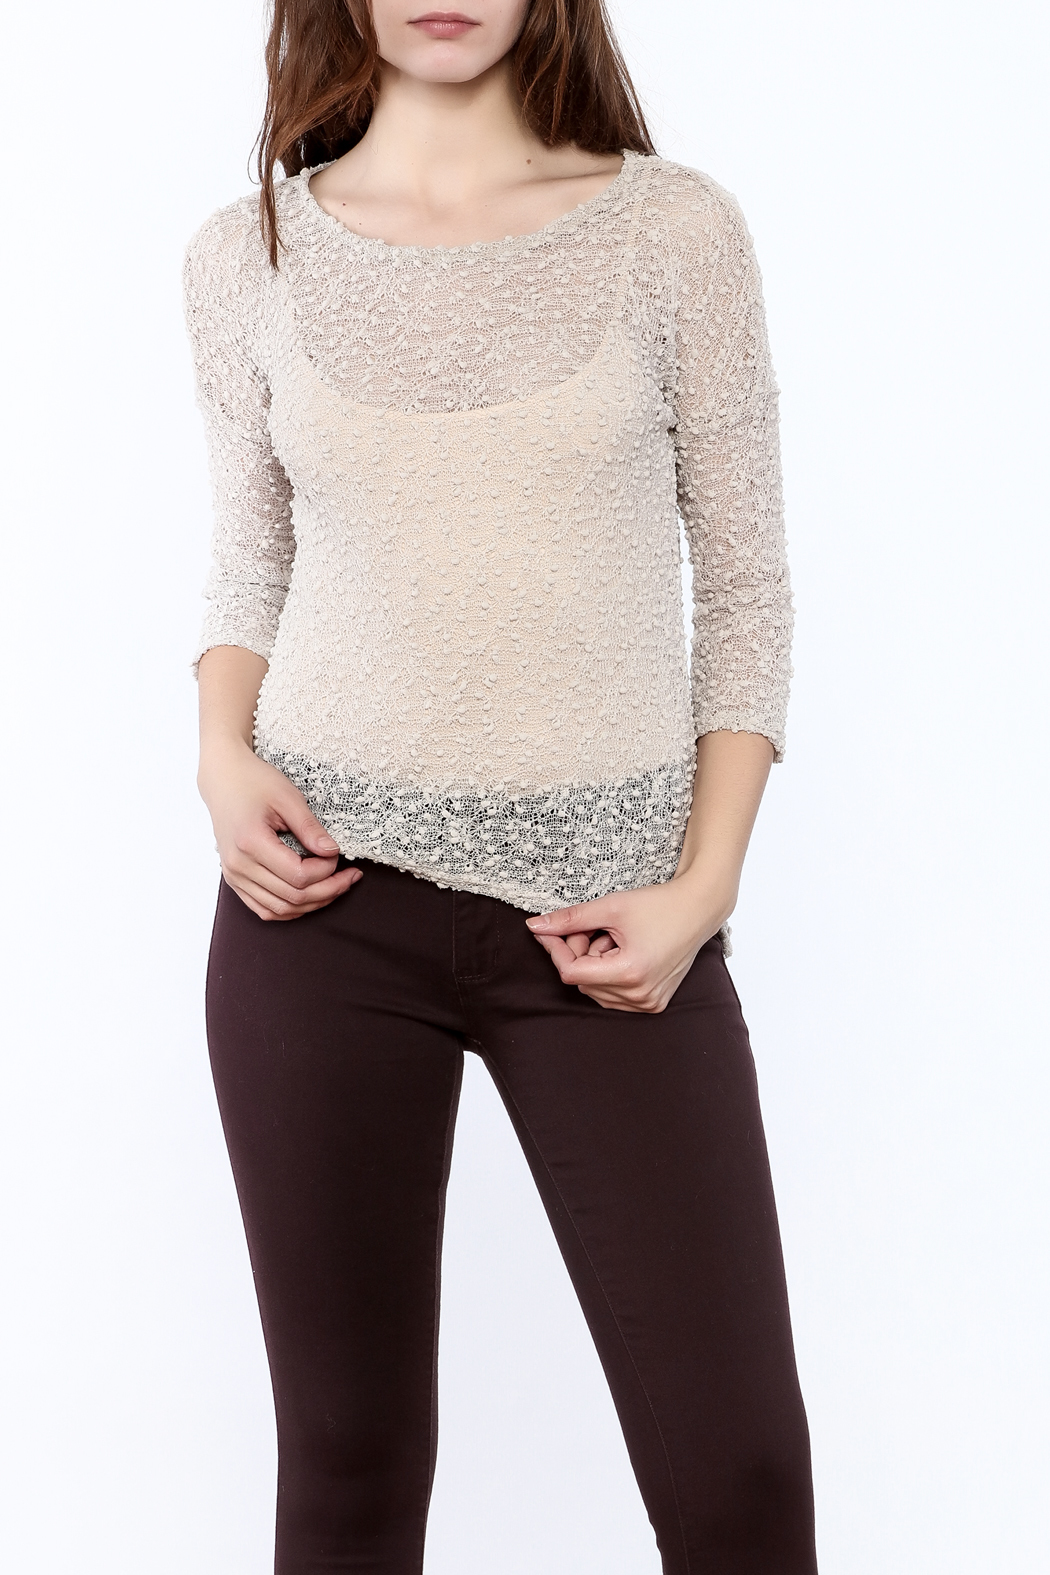 Rousseau Gritty Beige Top - Main Image